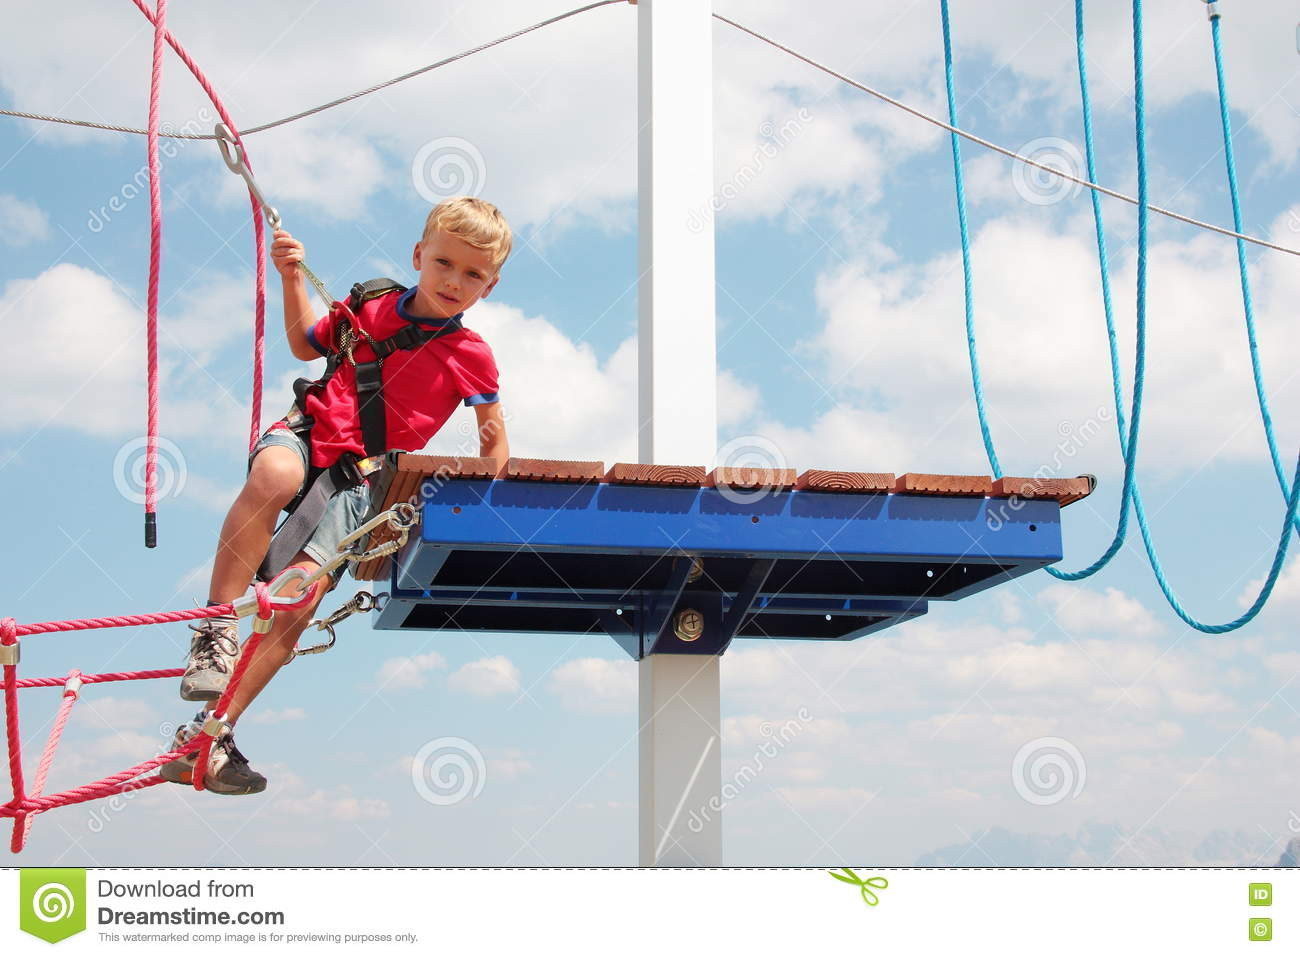 Blond hair kid playing rope course outdoor